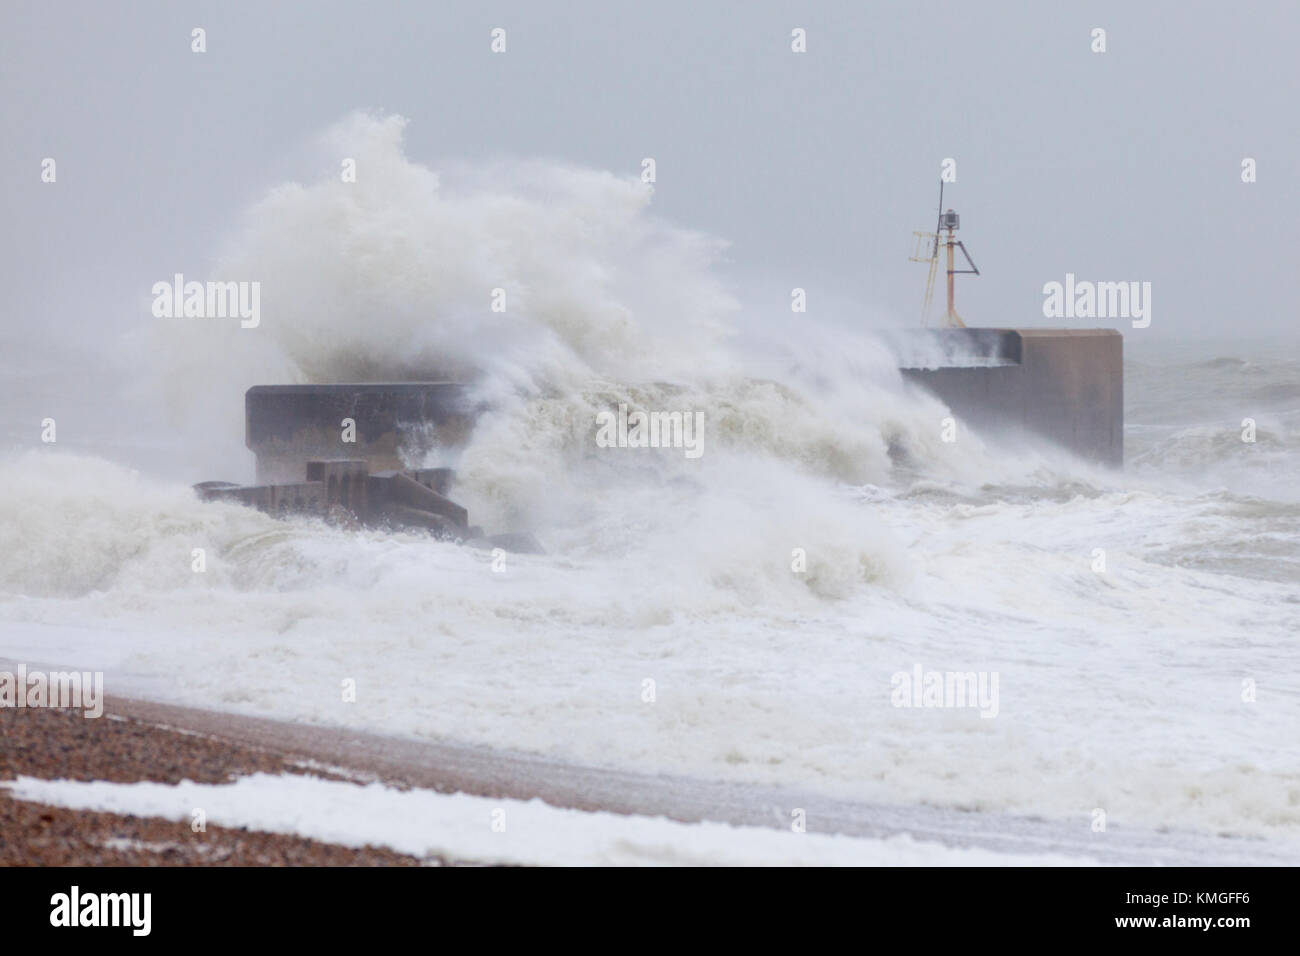 Hastings, East Sussex, UK. 7th December, 2017. Strong winds are battering the coastal town of Hastings this morning Stock Photo